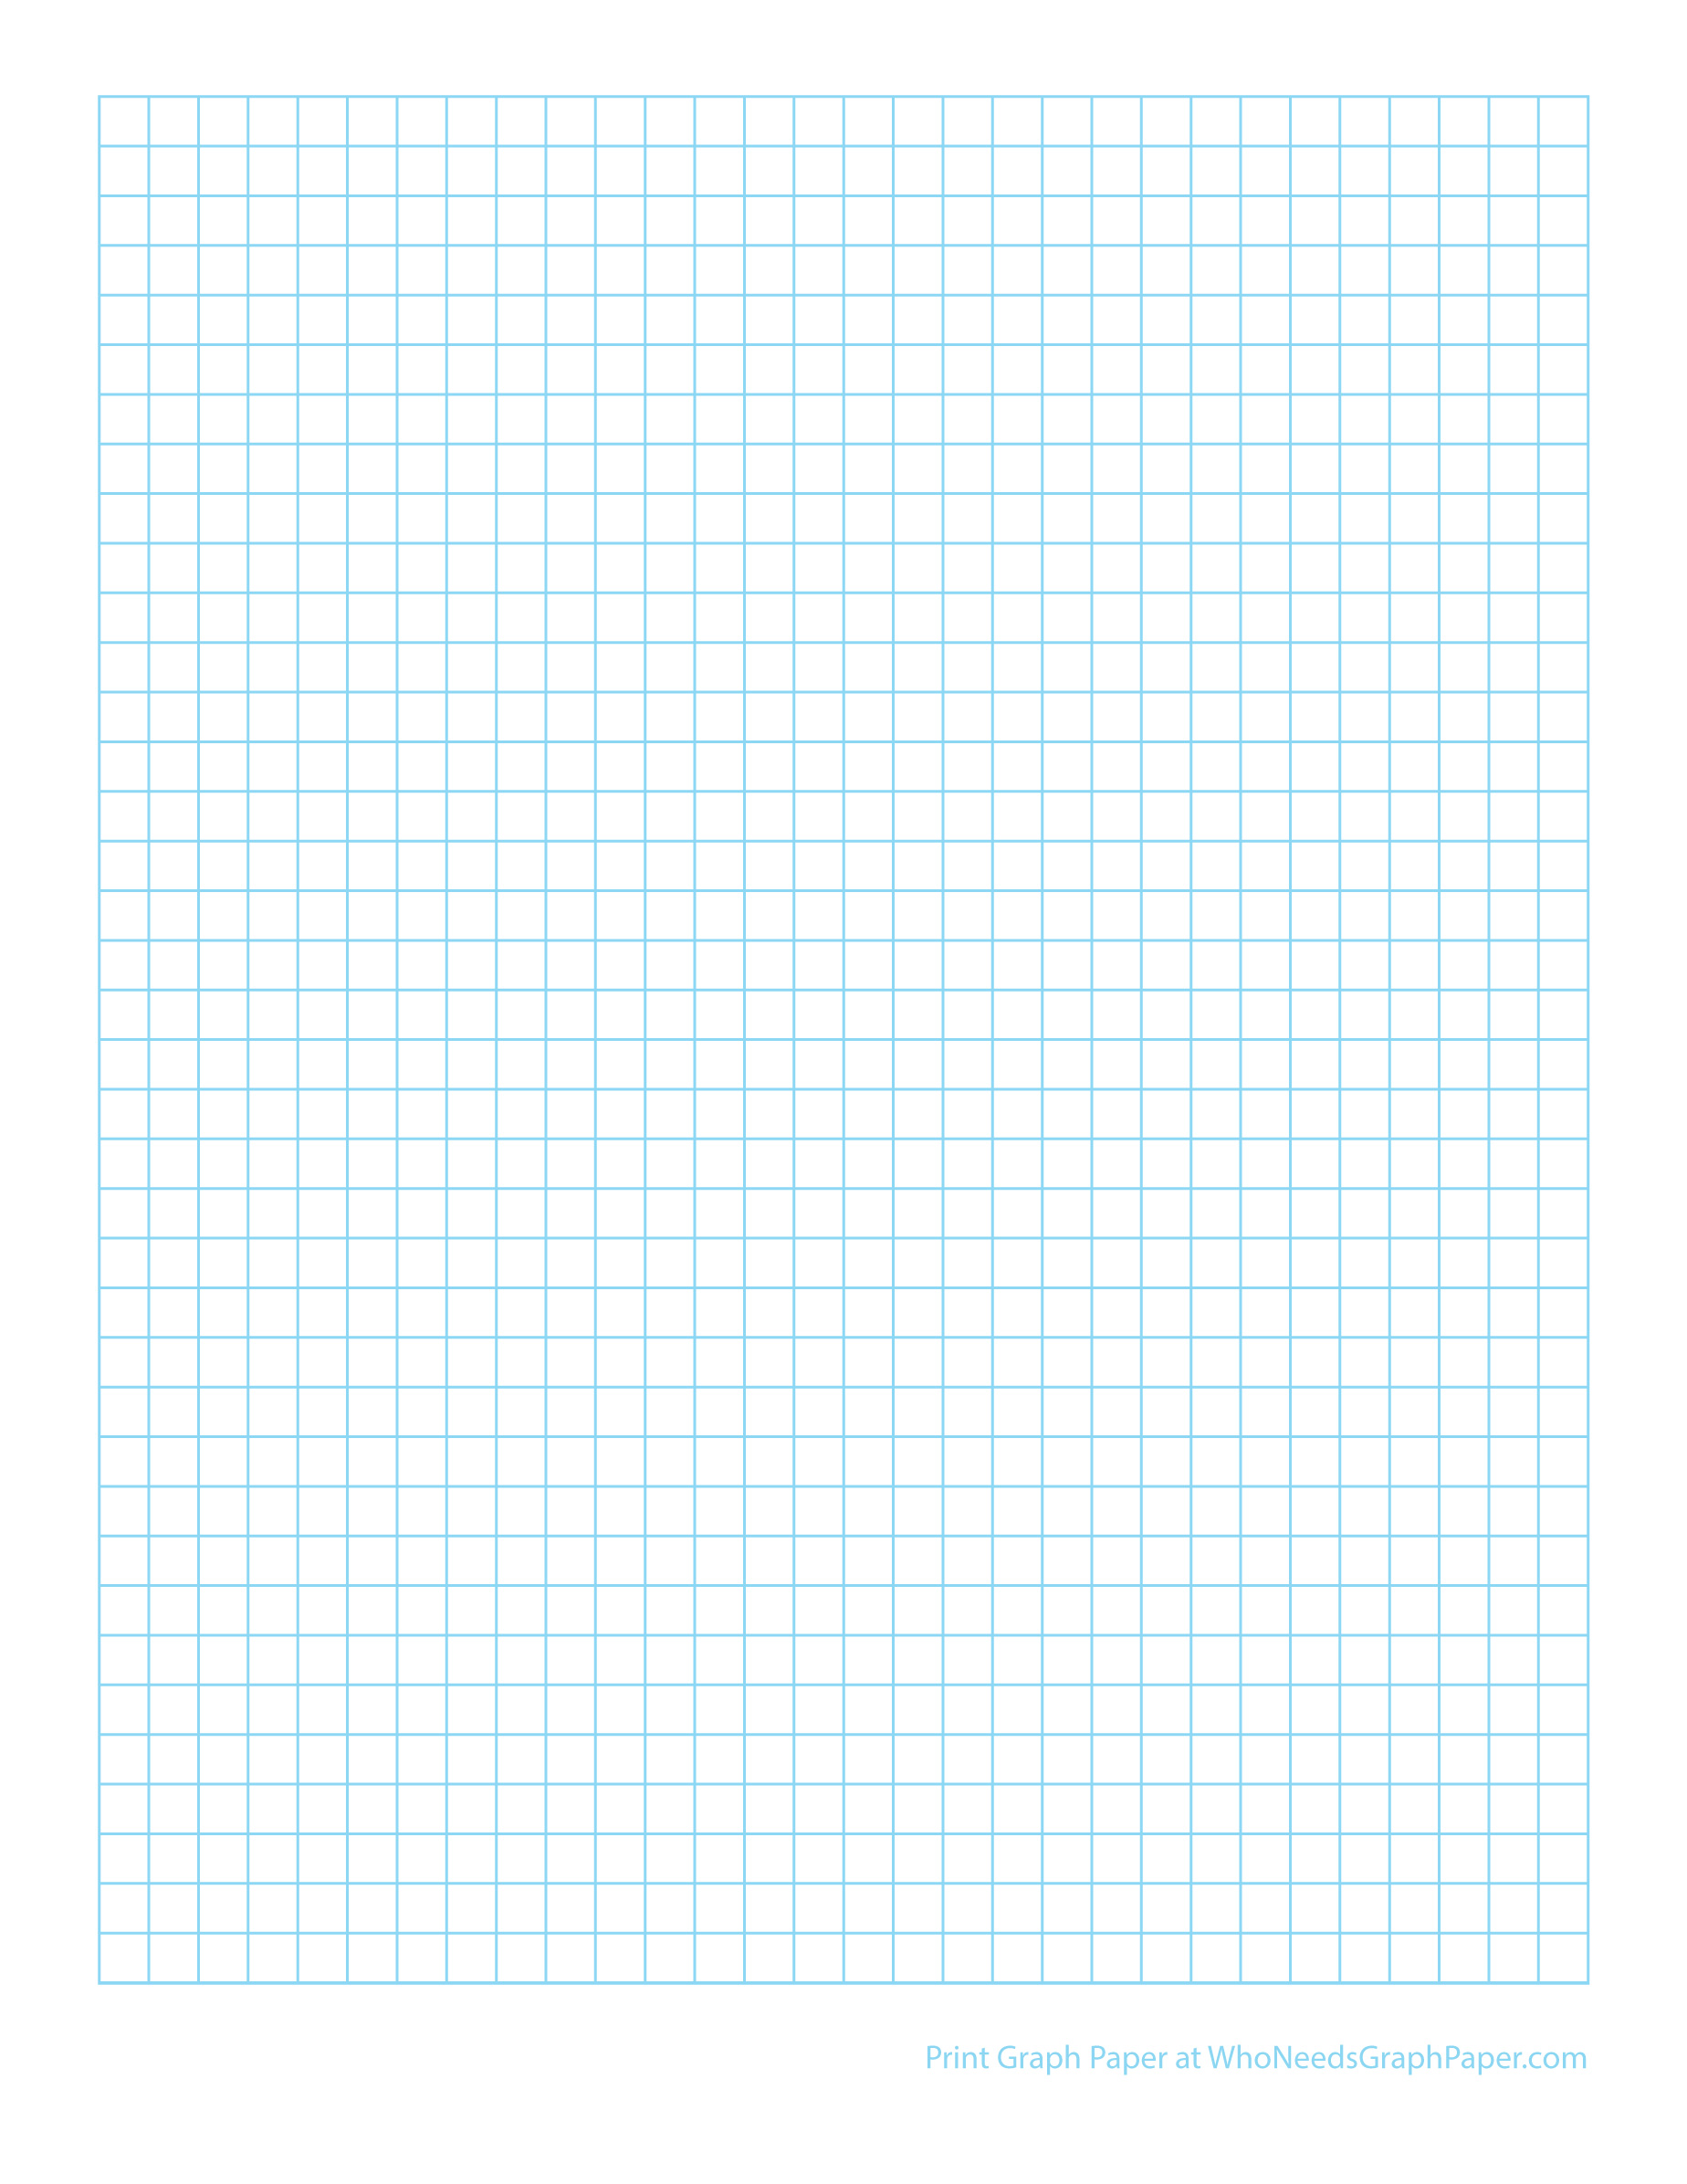 graphing paper to print